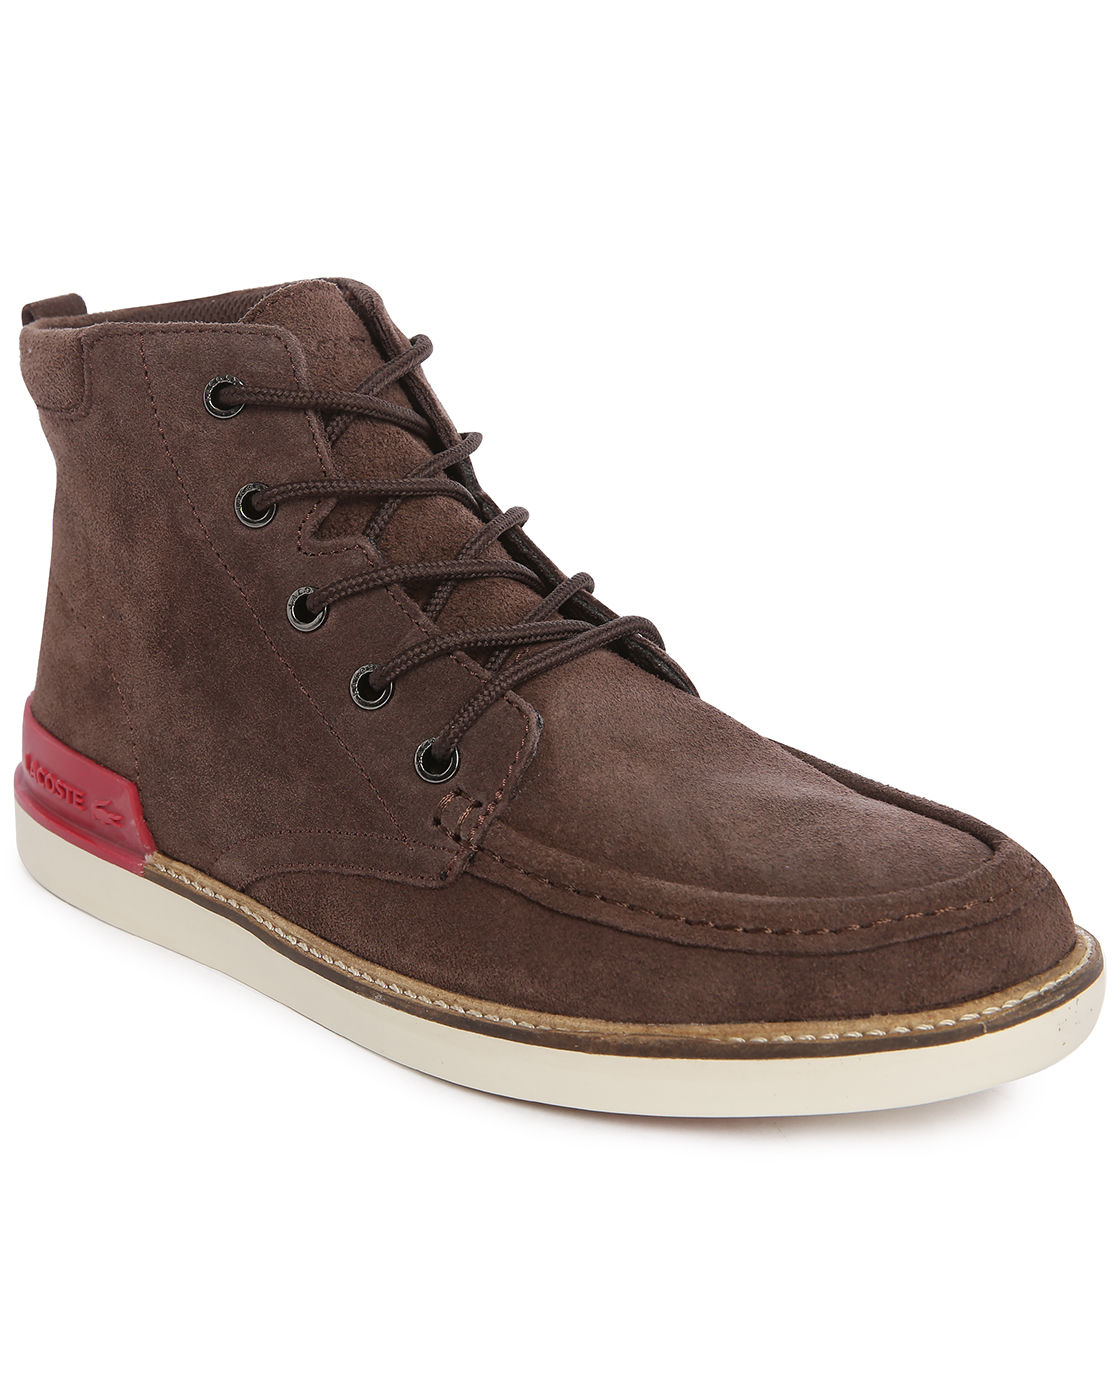 lacoste zinder srm brown suede boots in brown for lyst